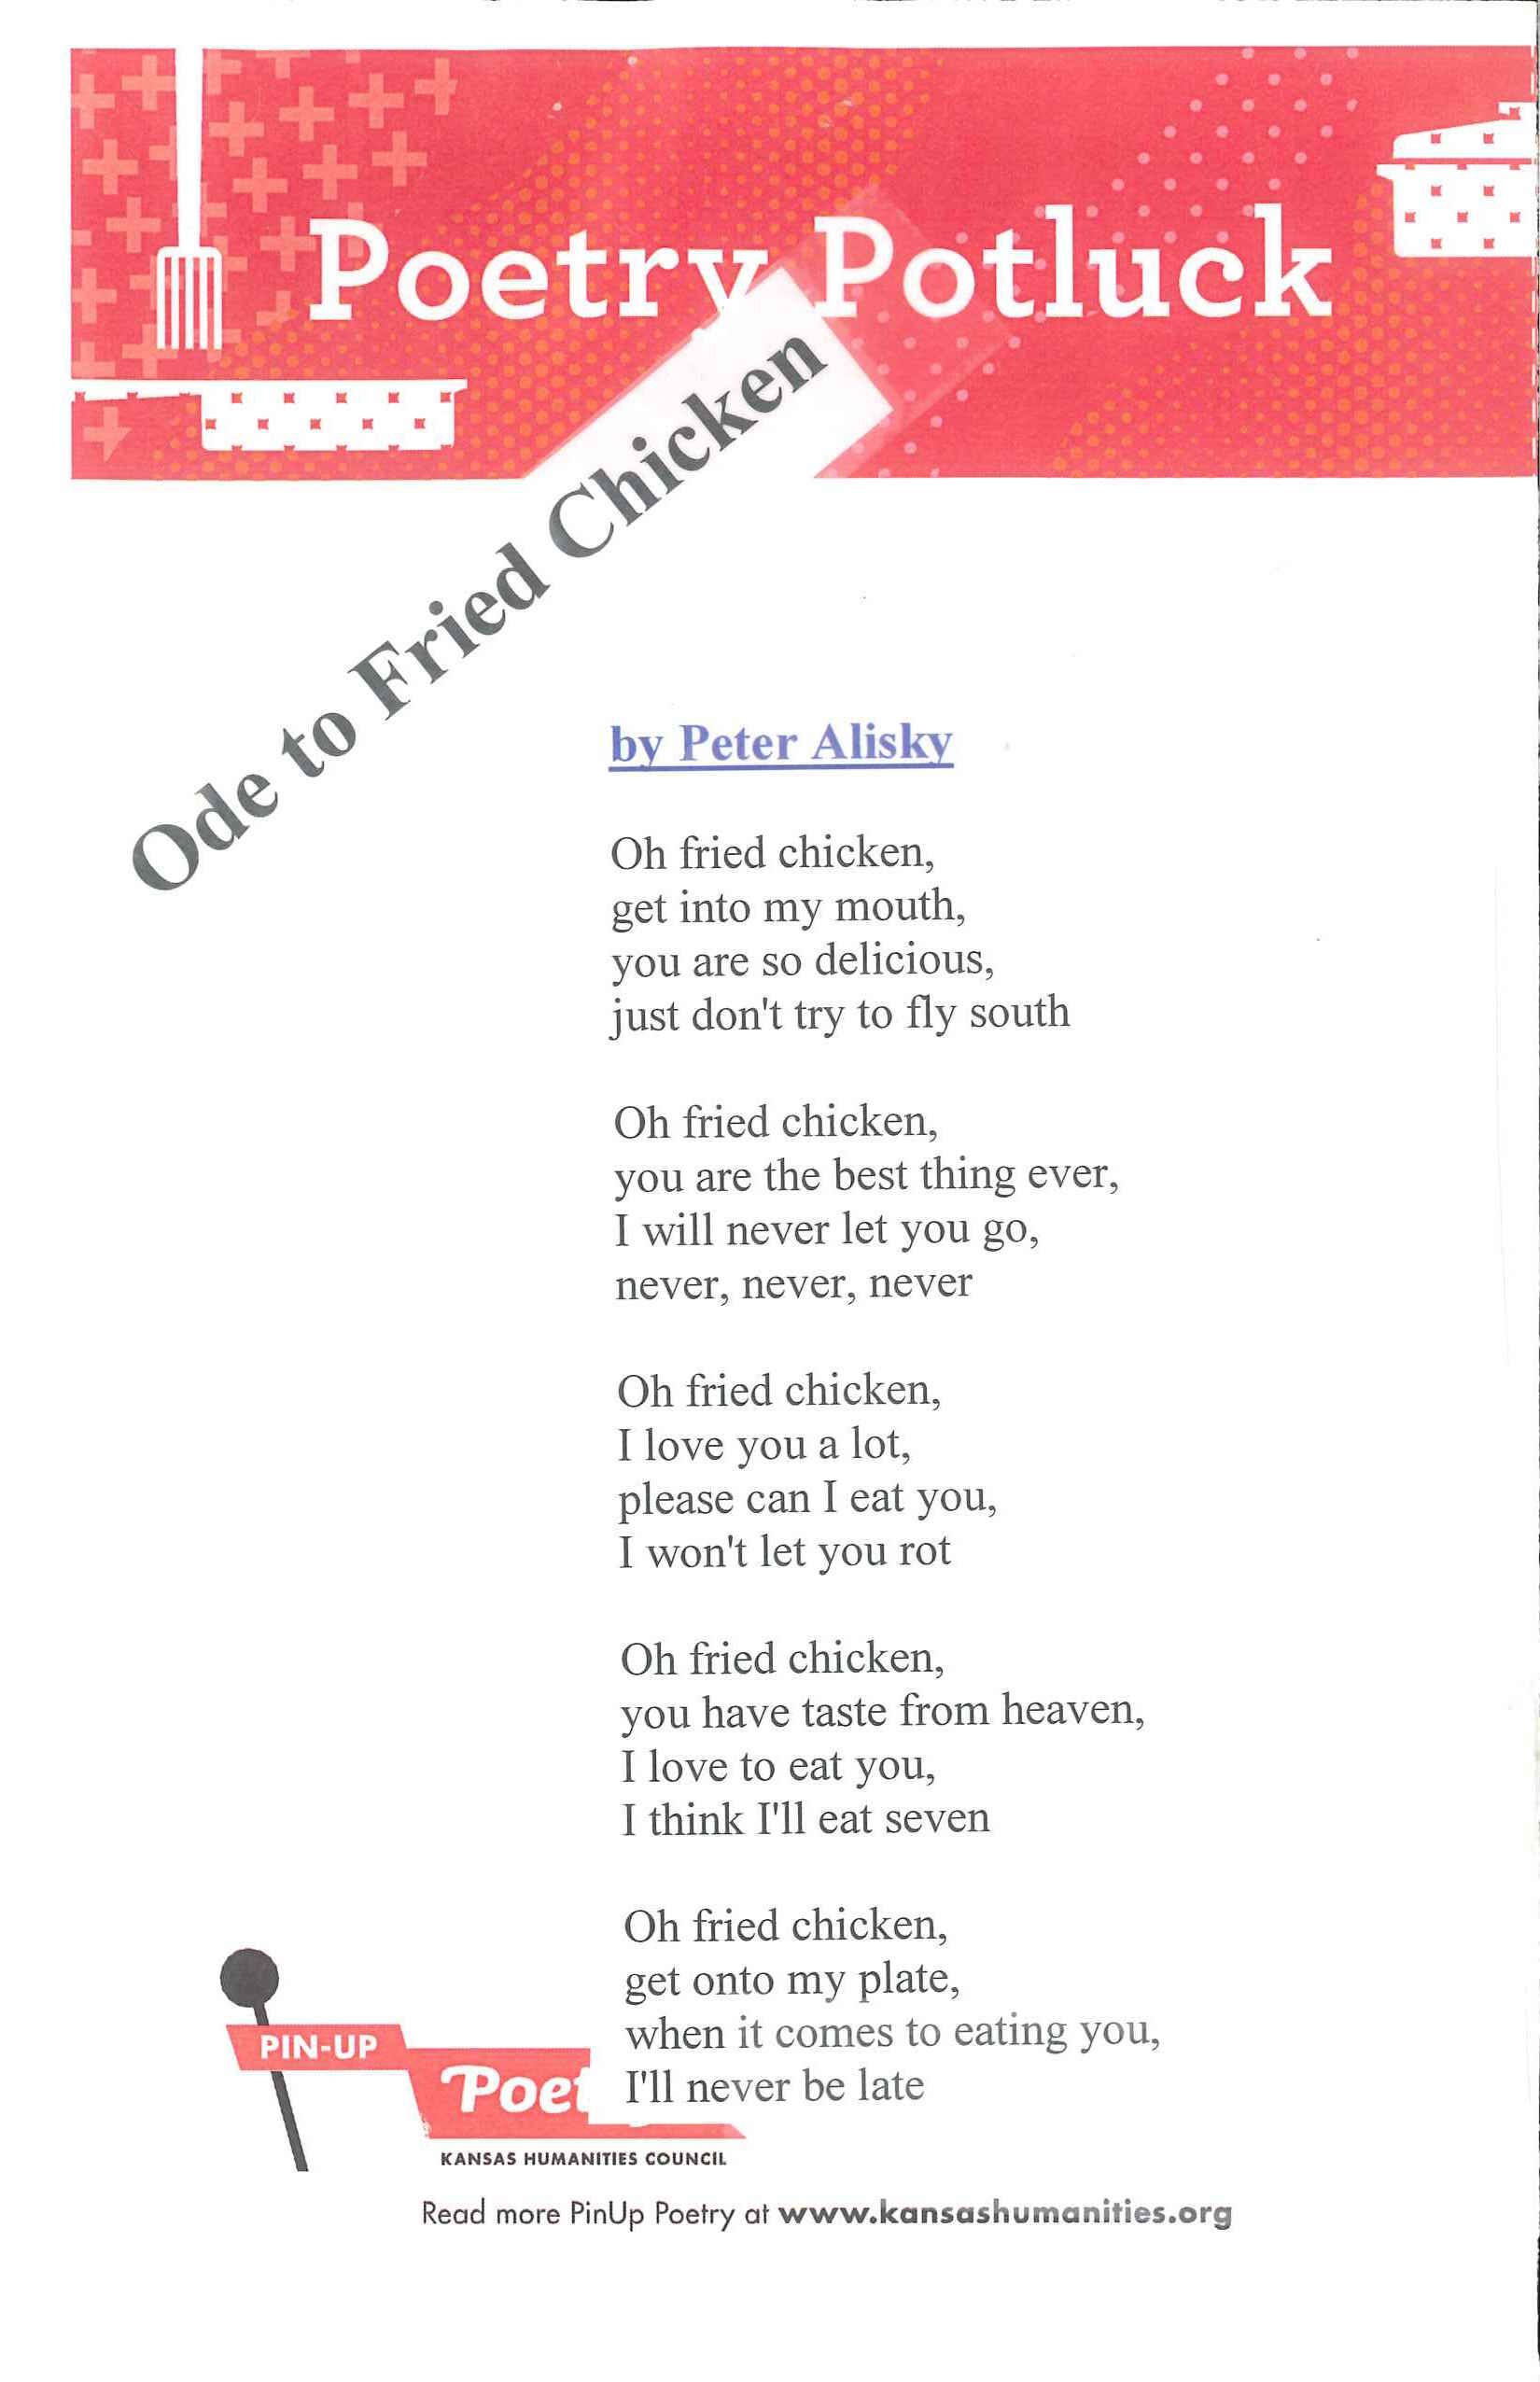 Ode to fried chicken by peter alisky submitted by